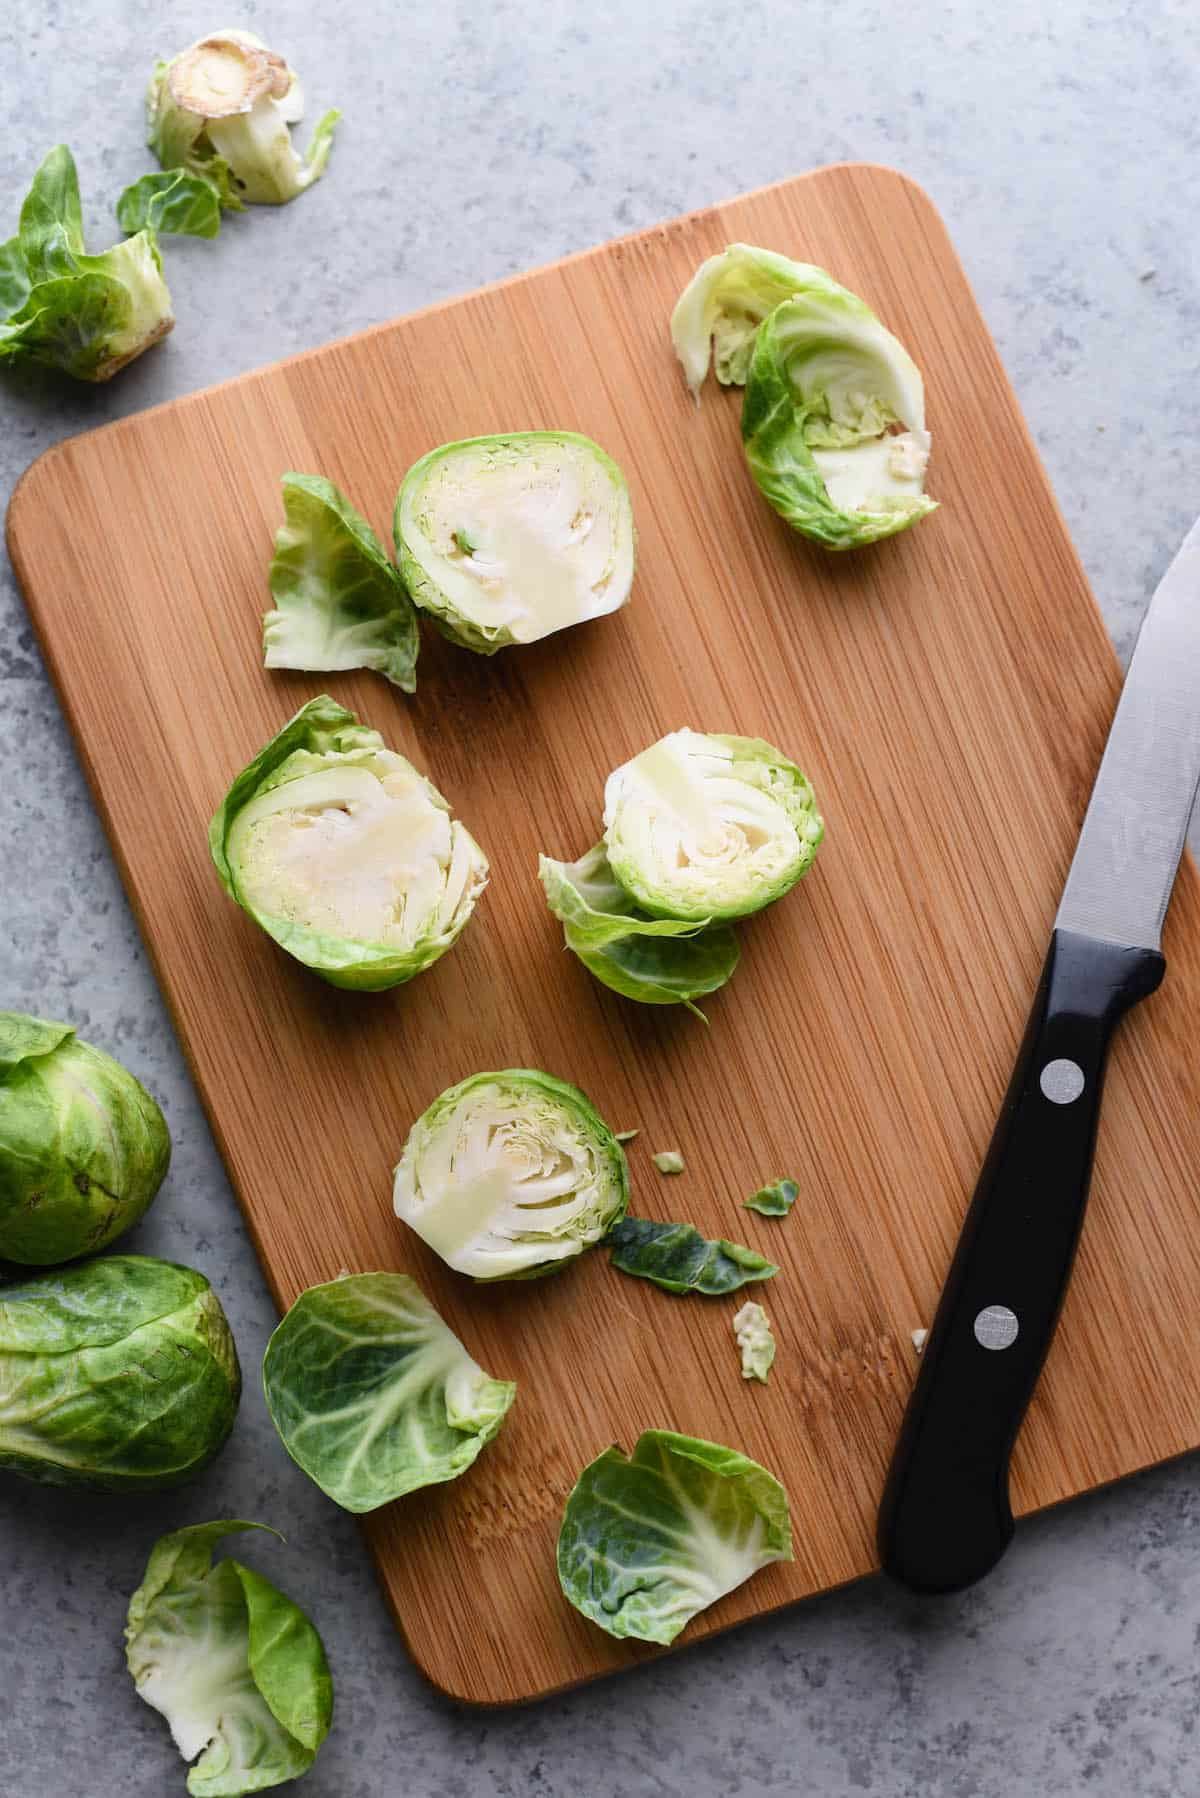 Halved raw brussels sprouts on cutting board with paring knife.